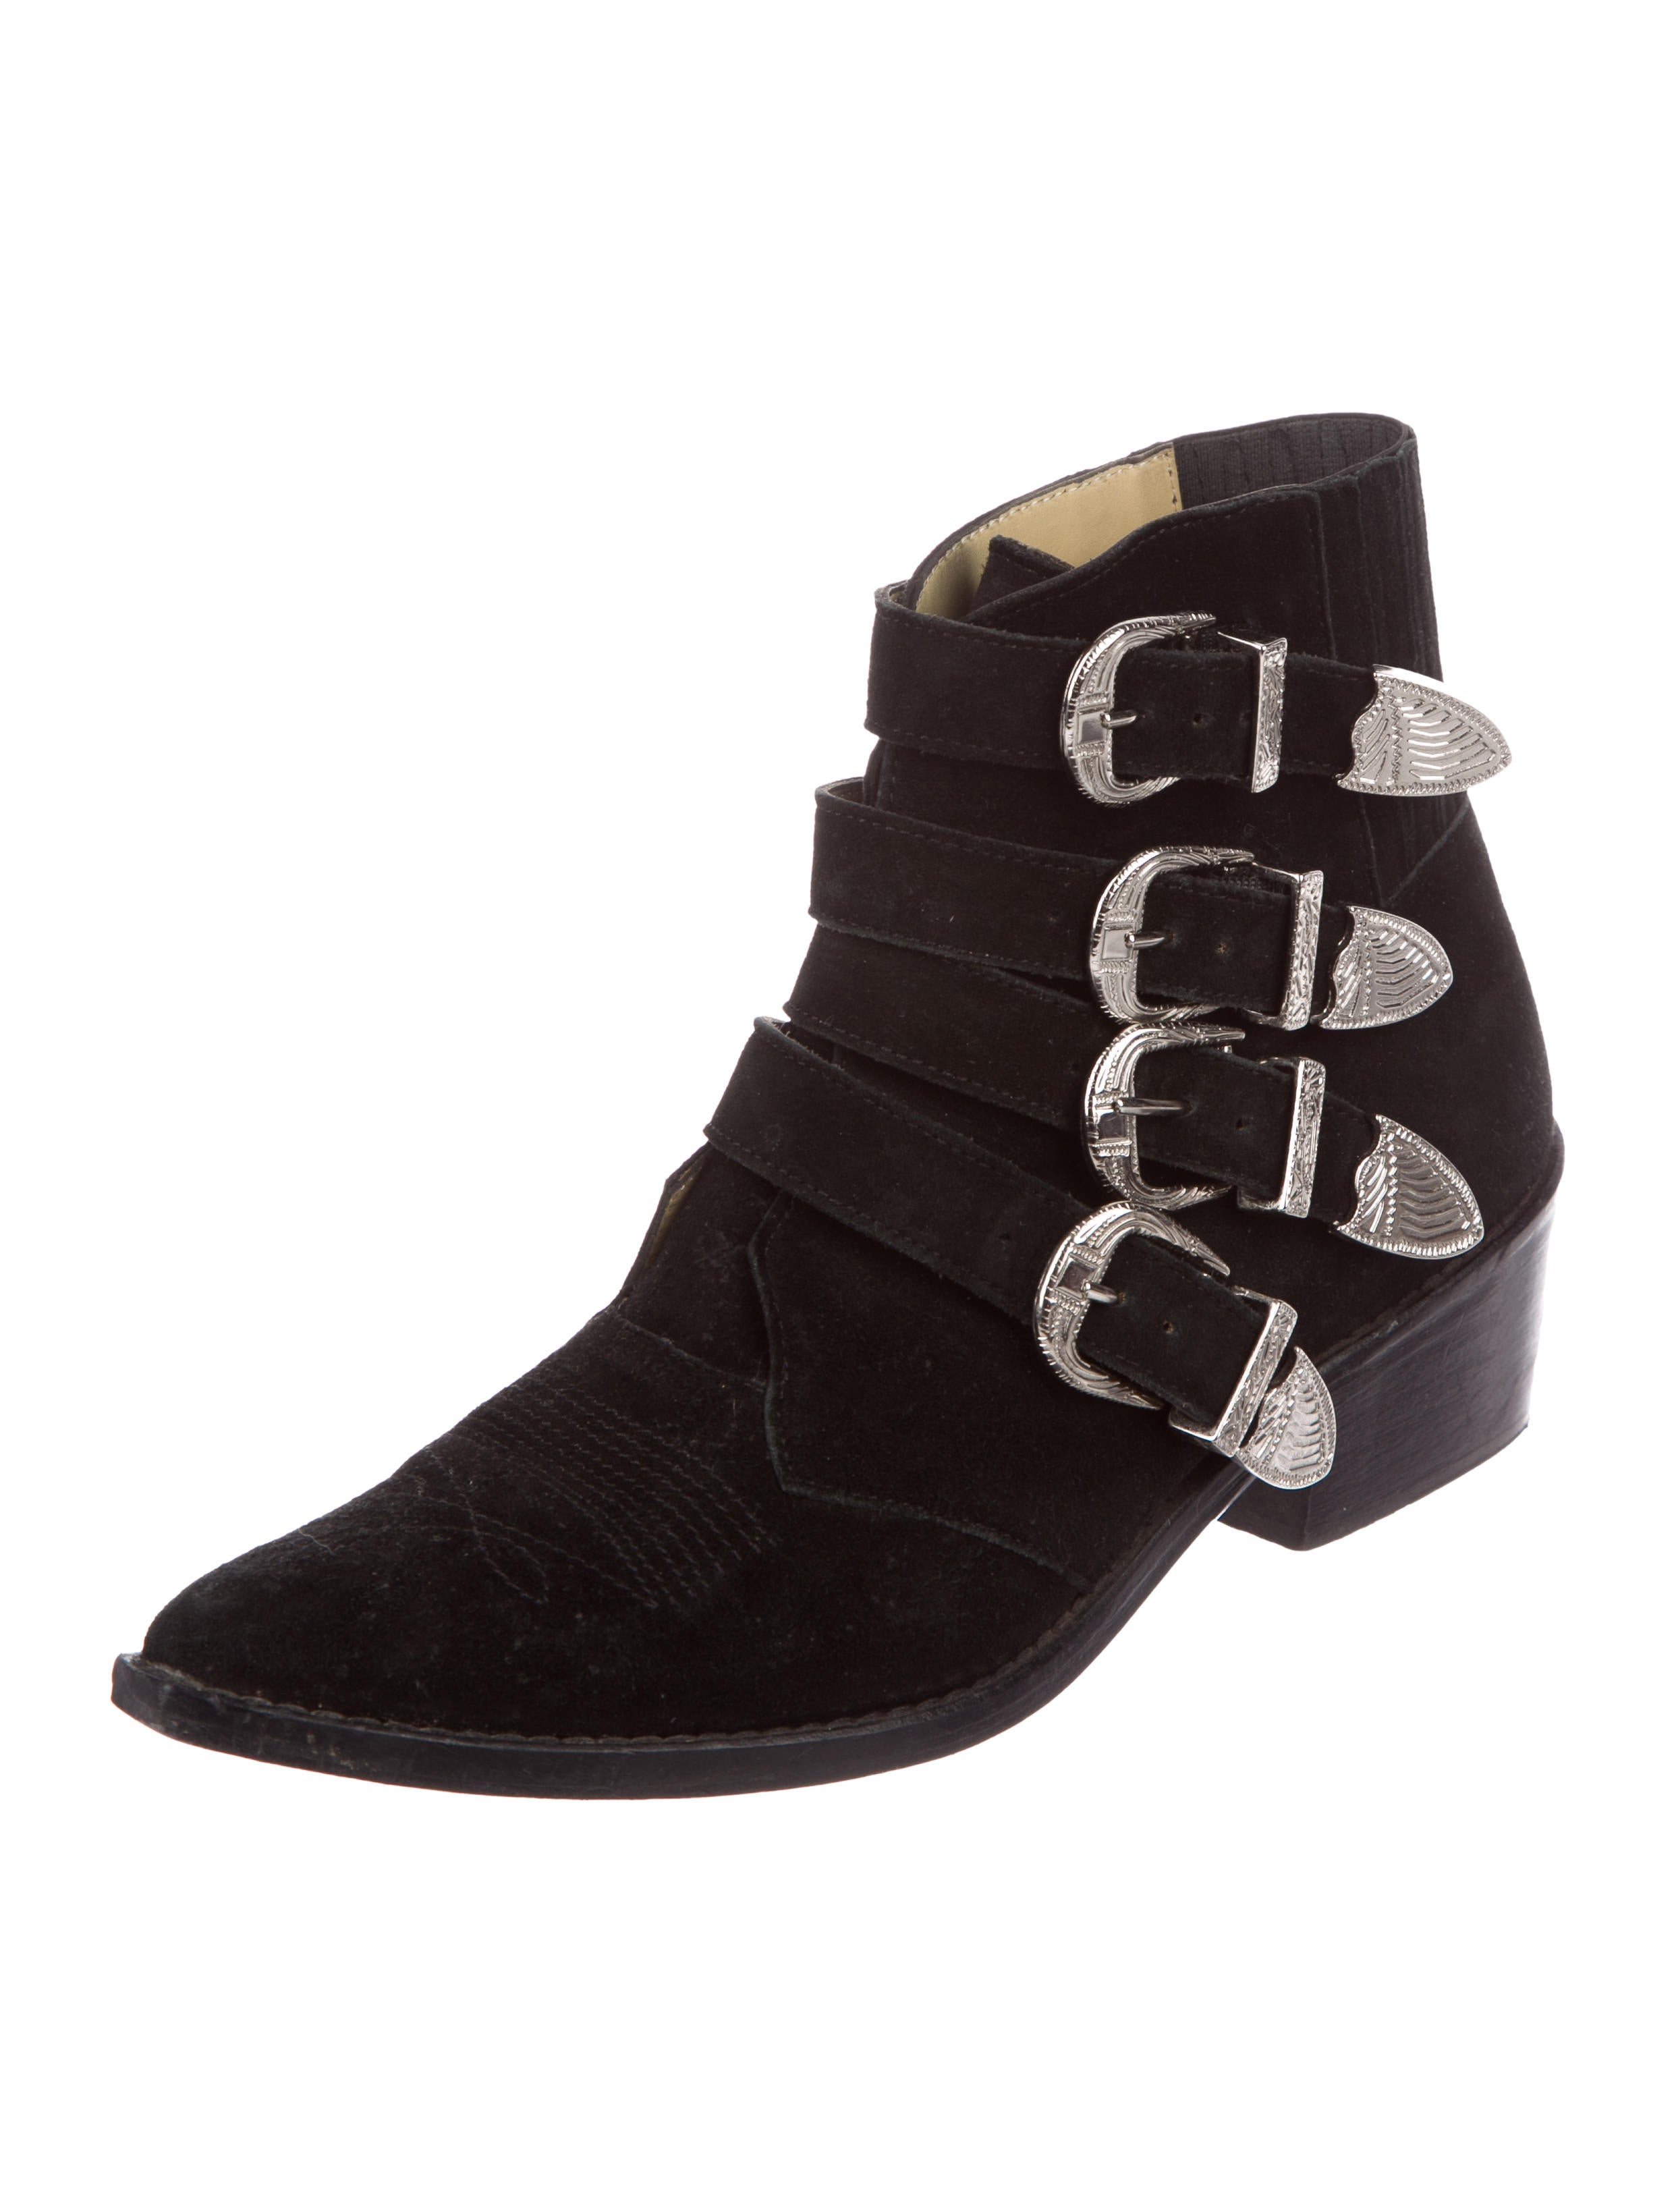 Toga Pulla Suede Multistrap Booties buy cheap professional view cheap online hot sale for sale mVoZAefwu5